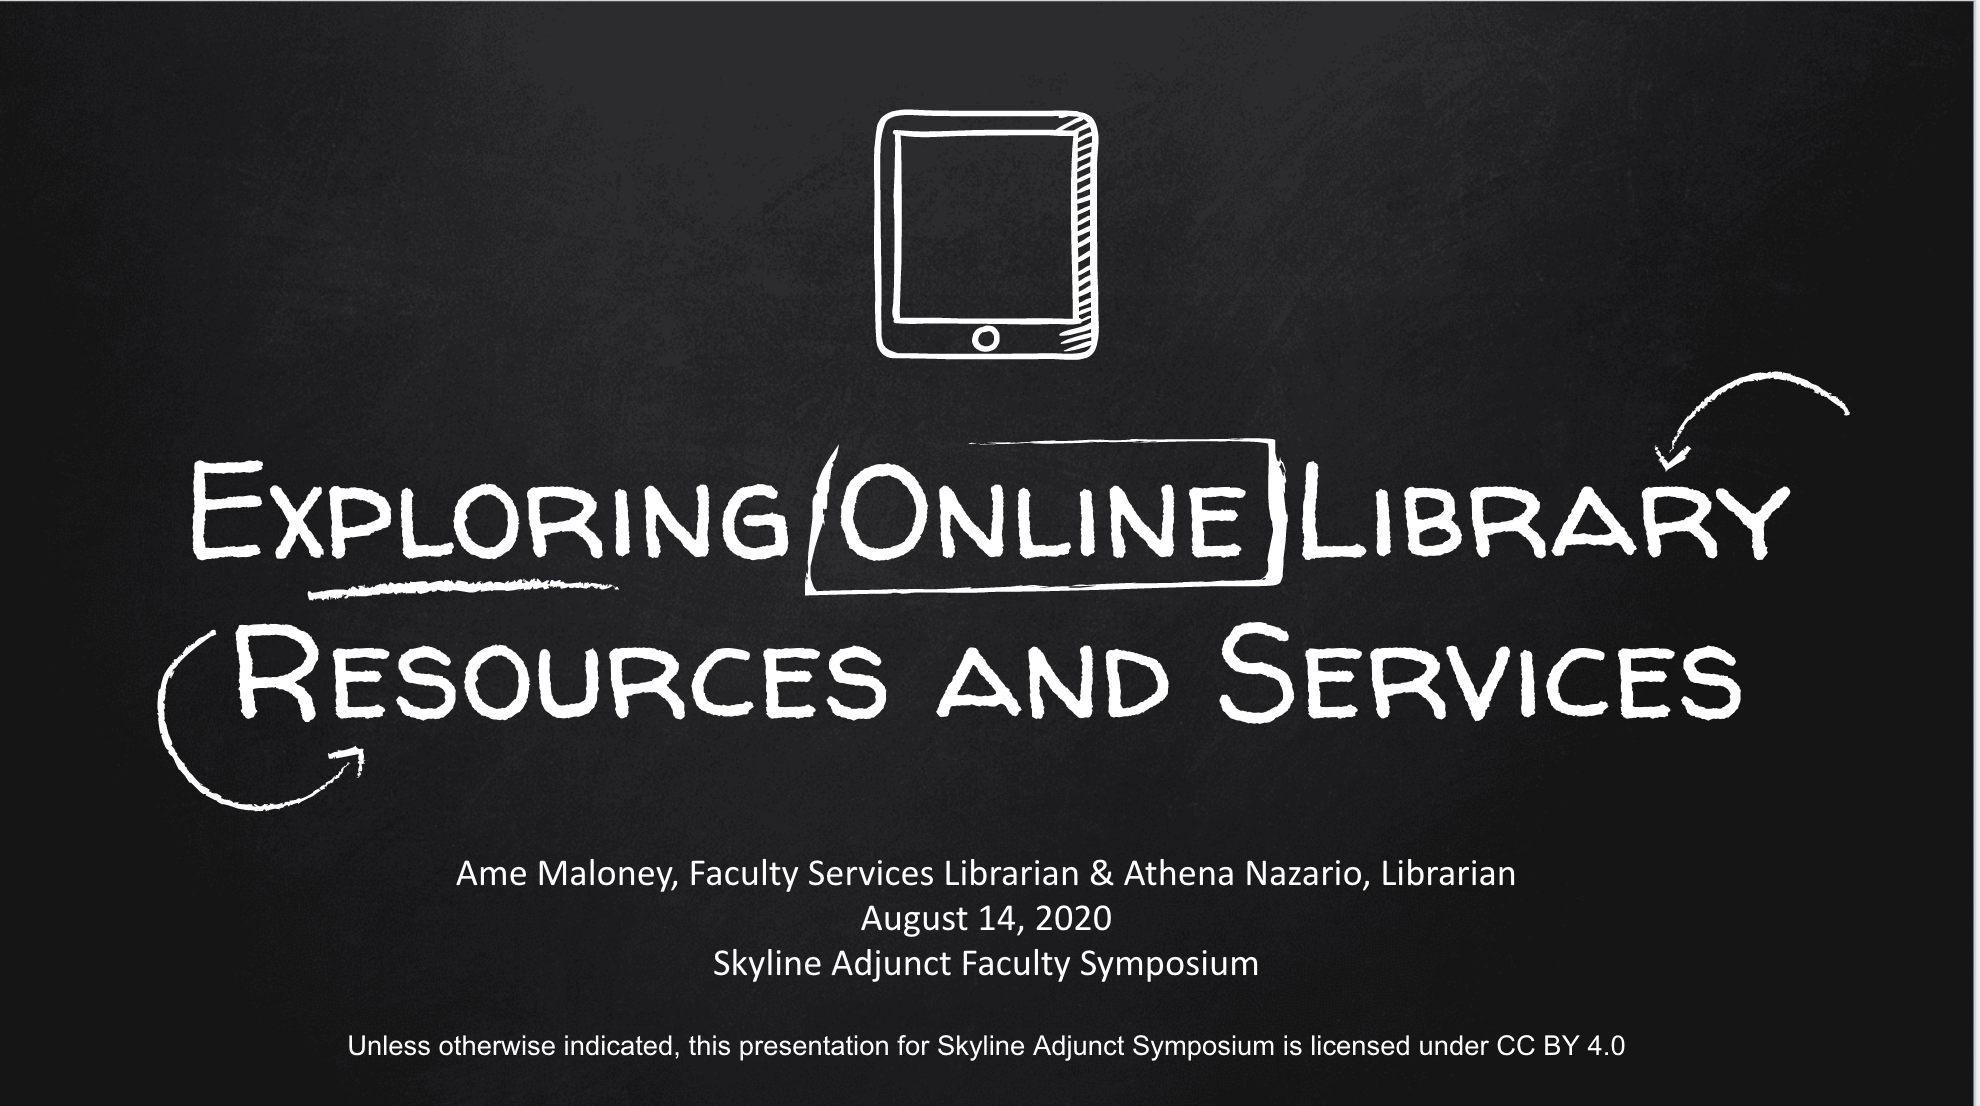 Exploring Online LIbrary Resources chalkboard graphic